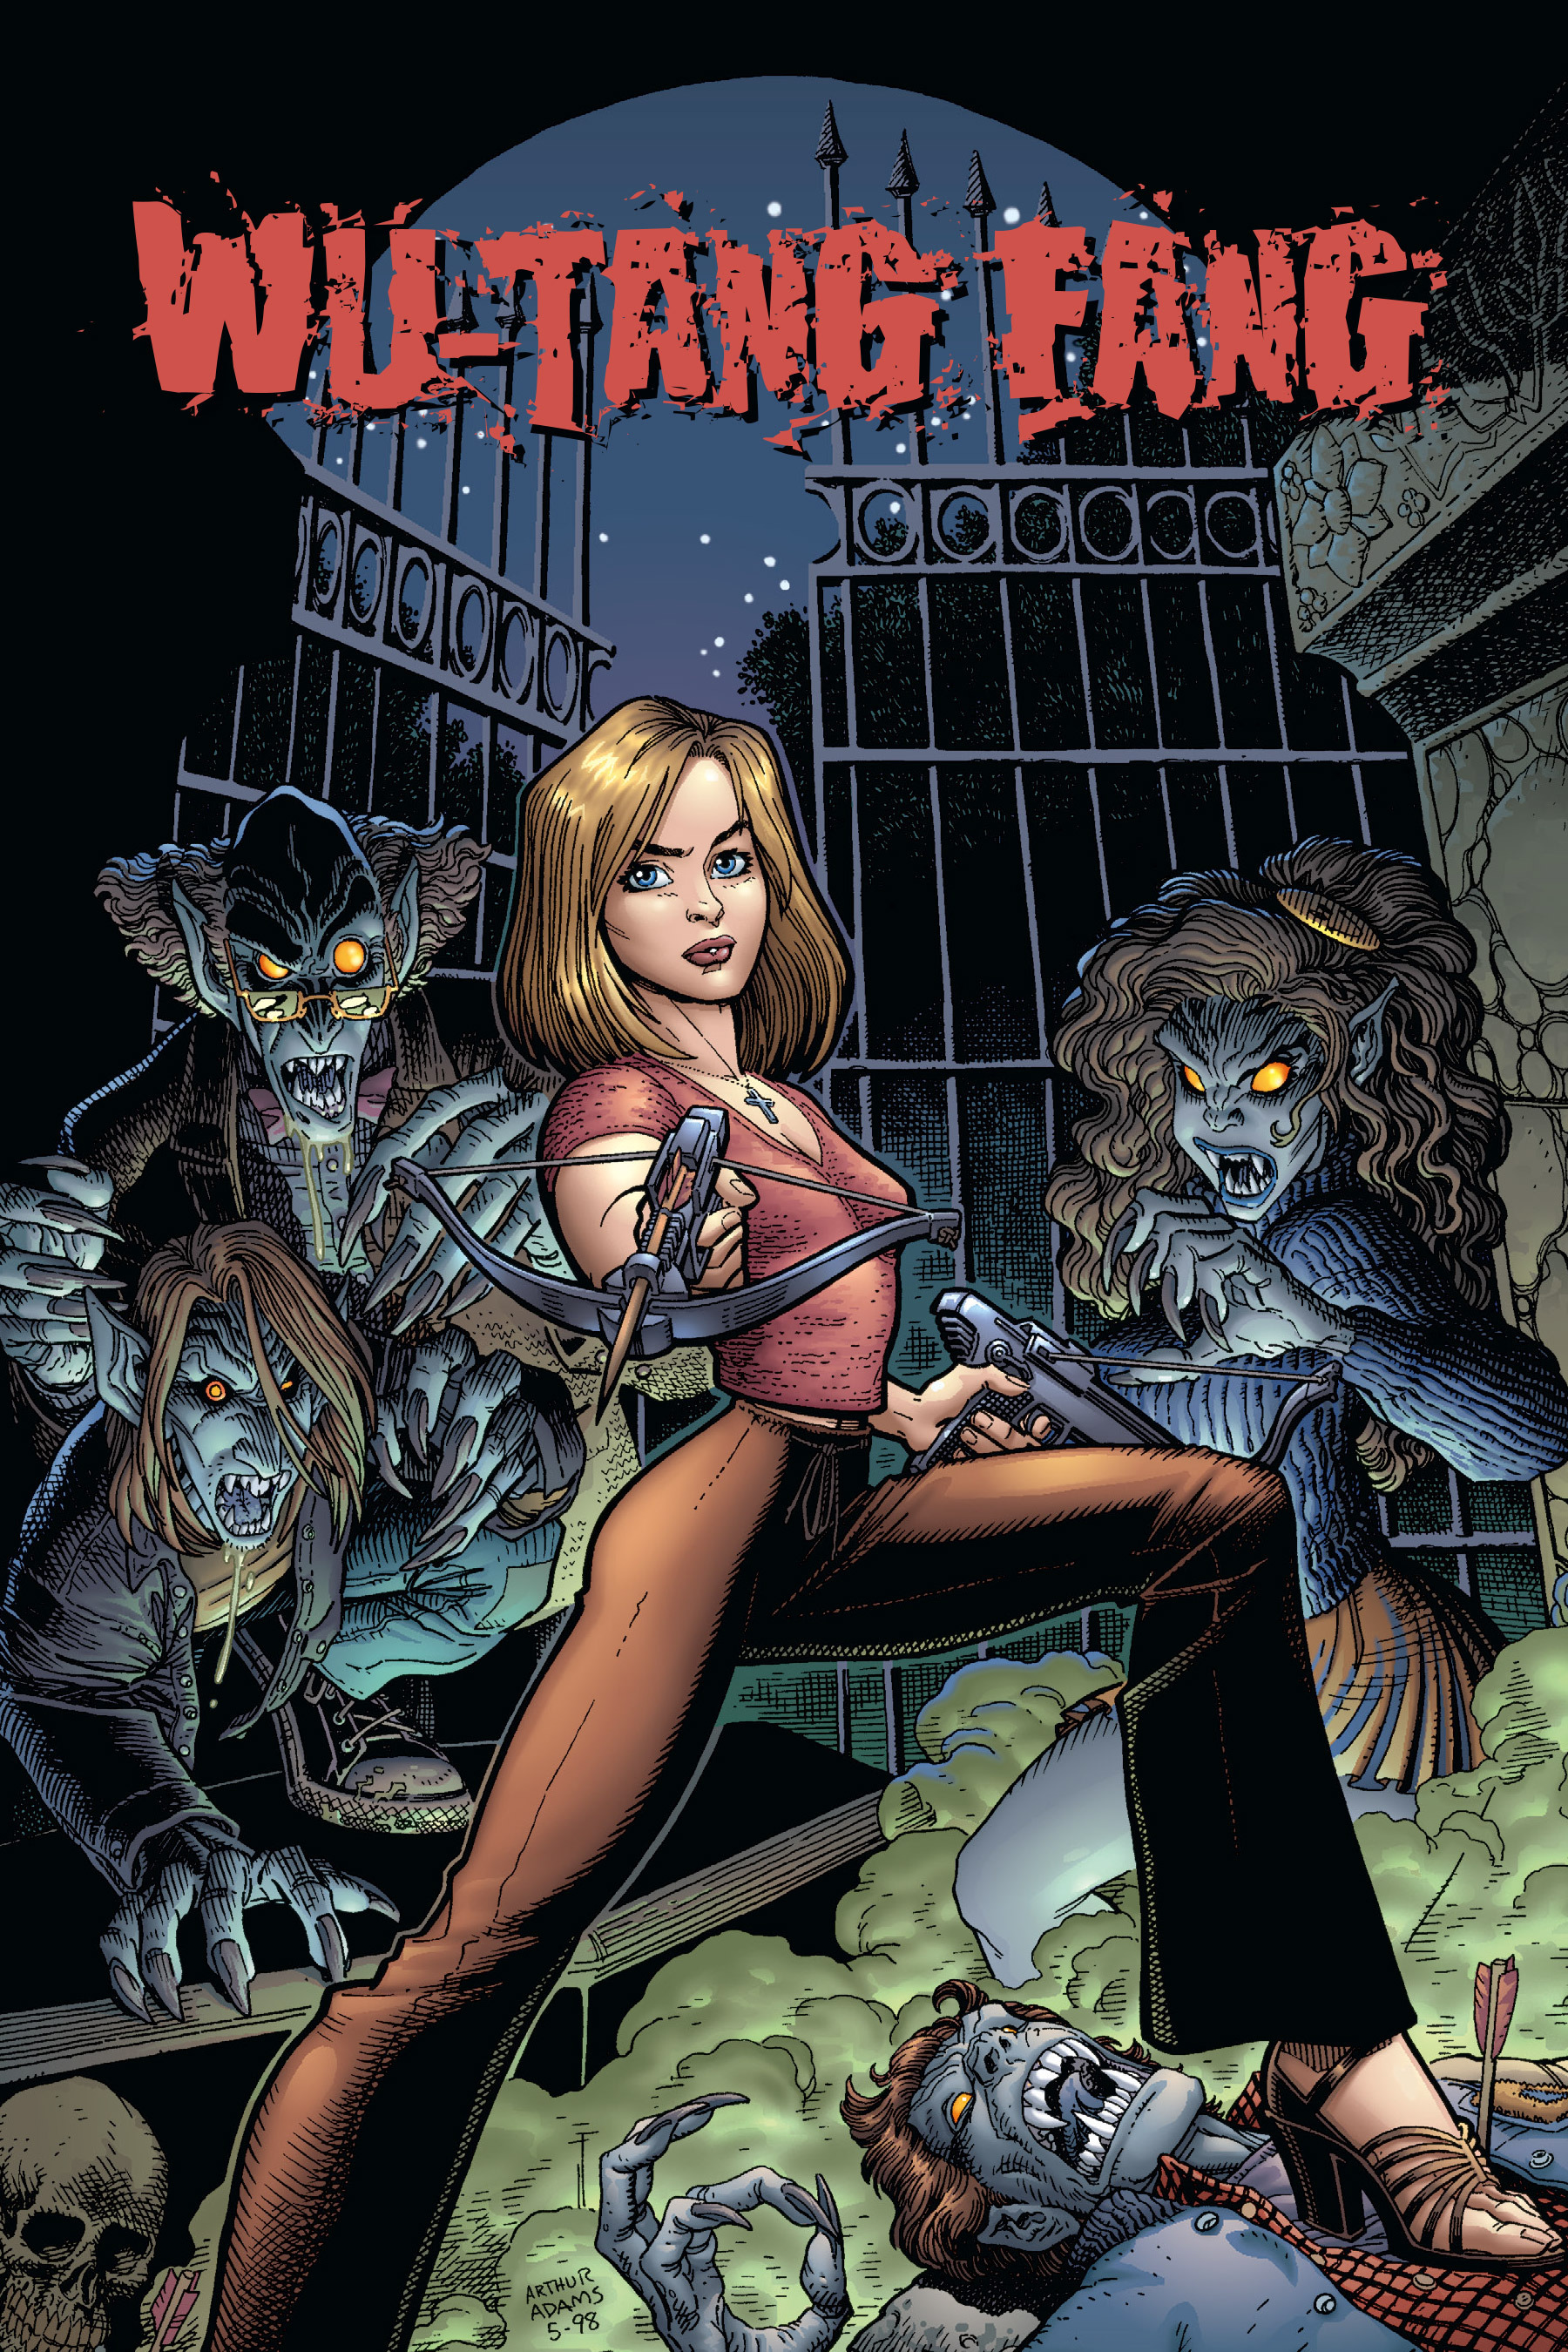 Read online Buffy the Vampire Slayer: Omnibus comic -  Issue # TPB 3 - 8